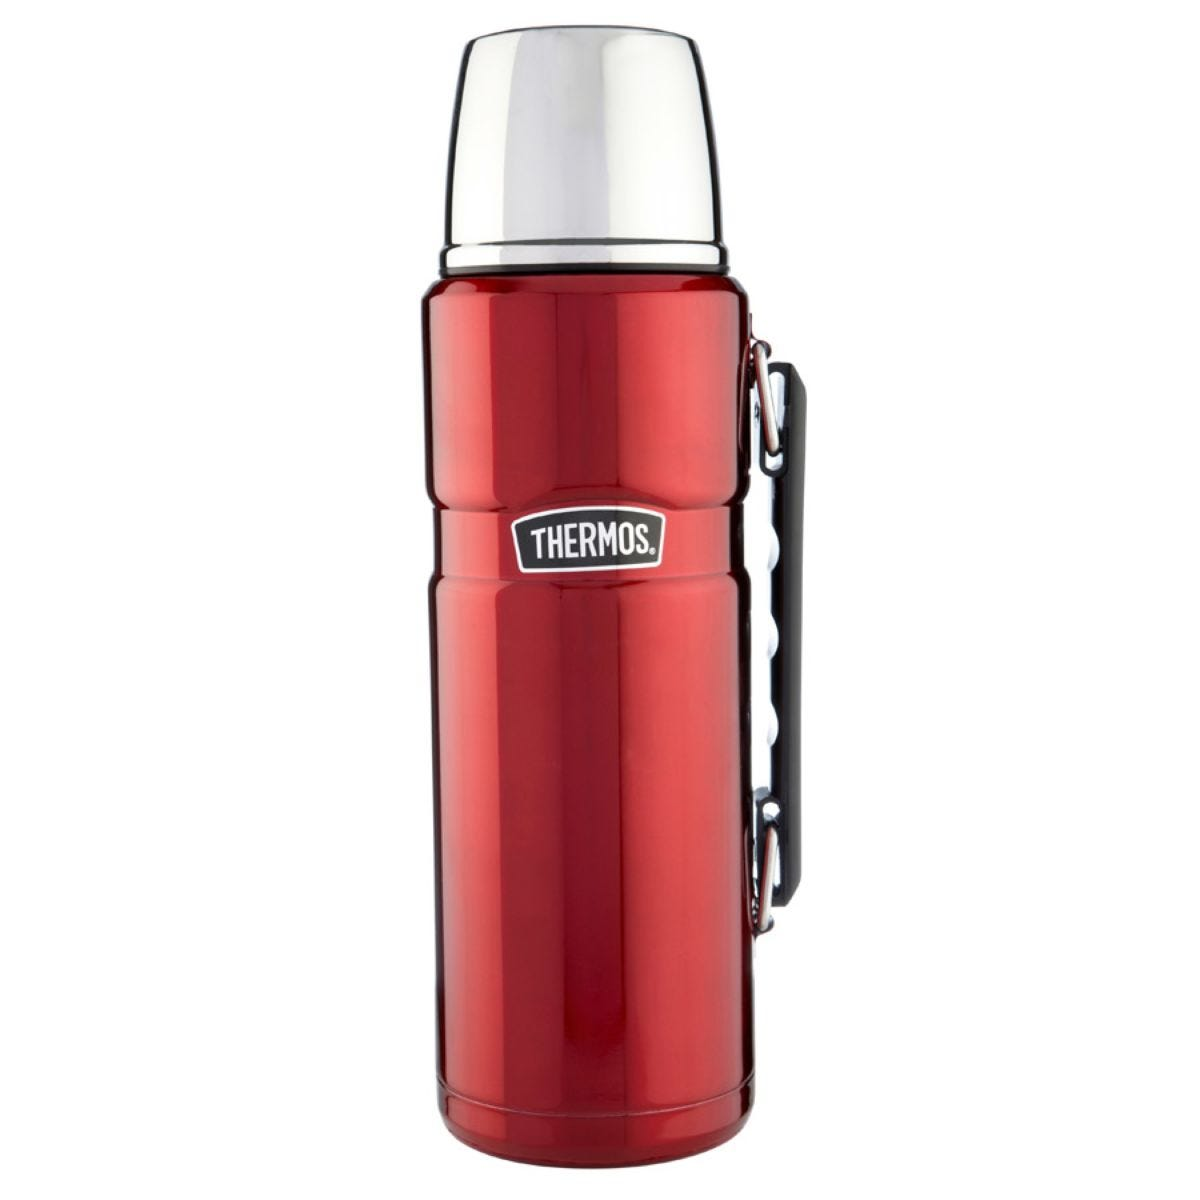 Thermos 1.2L Stainless Steel King Flask - Red